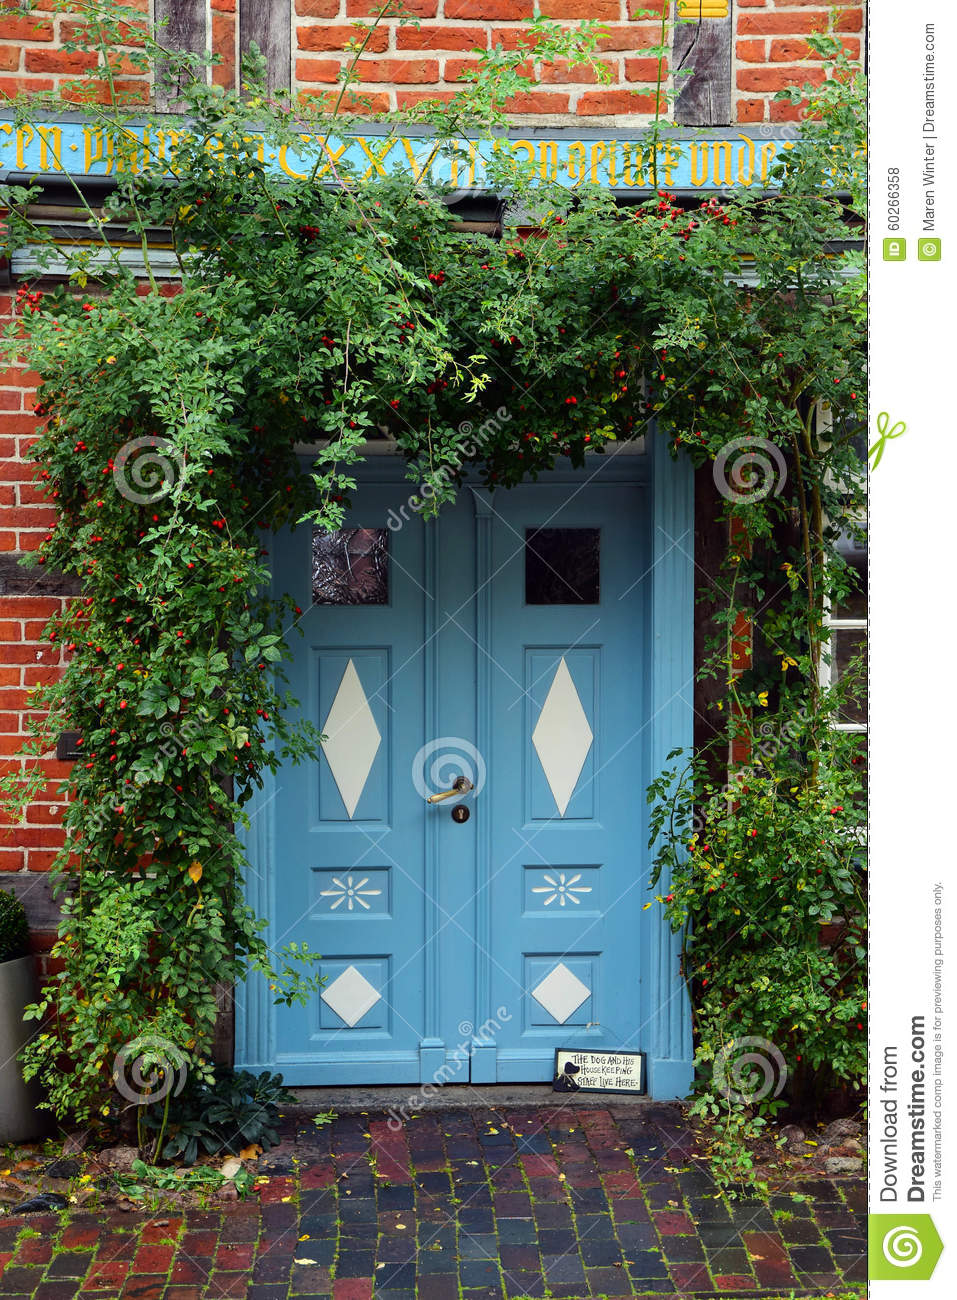 Blue Front Door In A Historic House With Climbing Plants